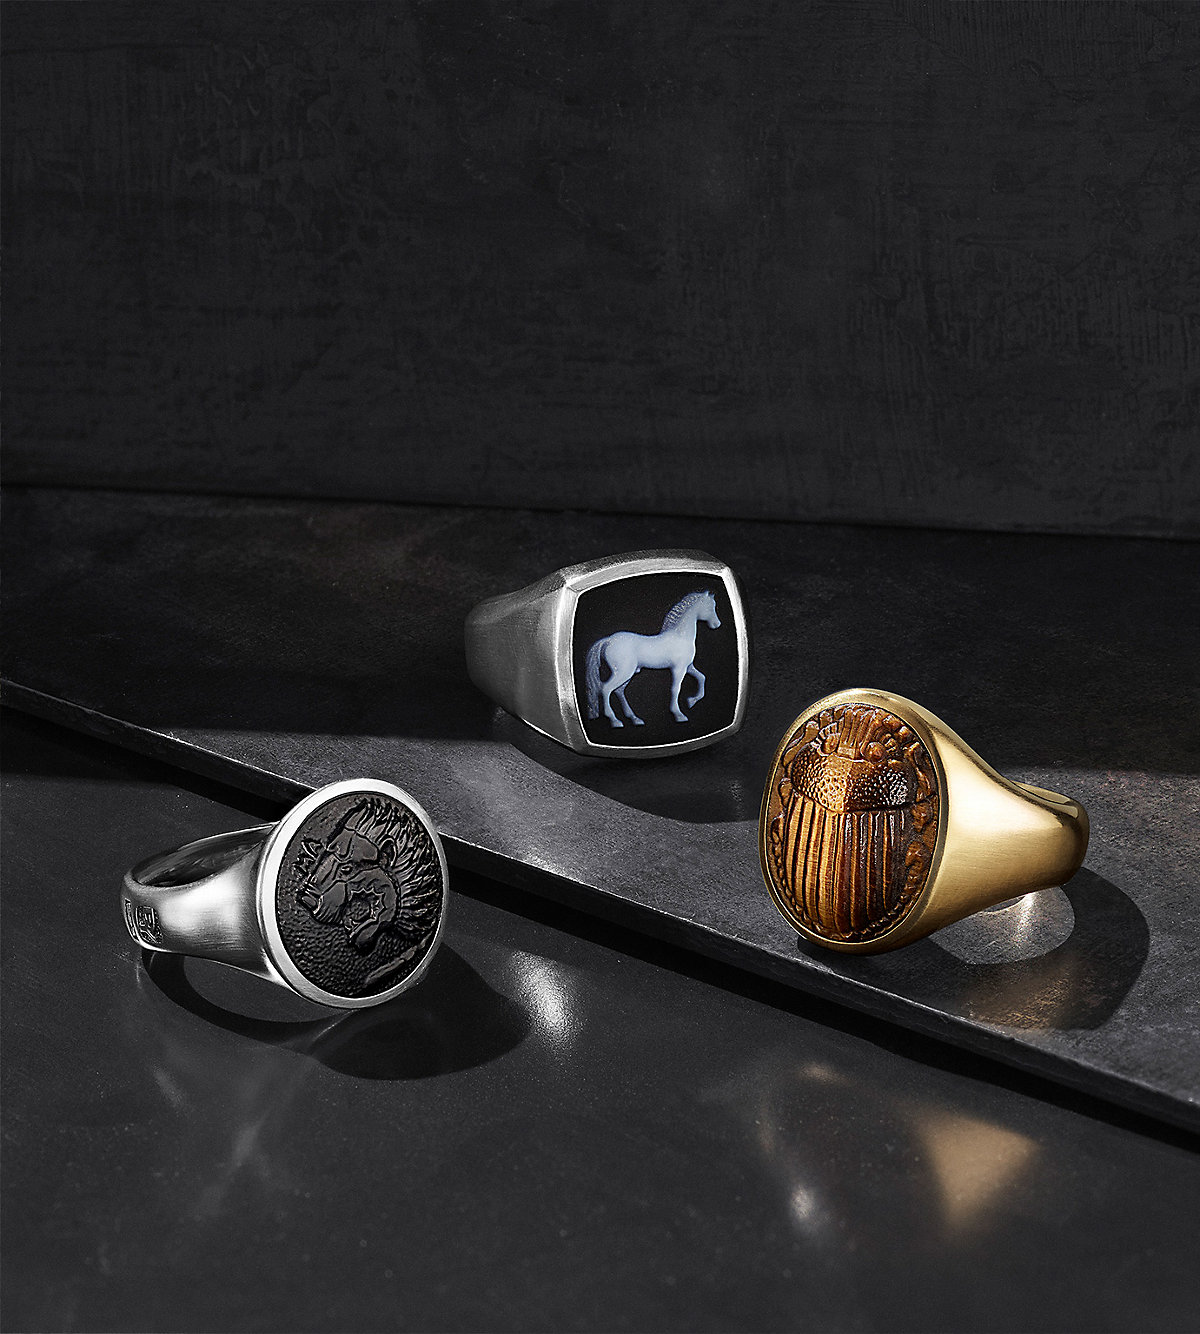 A color photo shows three David Yurman men's Petrvs signet rings scattered on a dark grey stepped stone surface. The rings each feature a carved center gemstone with a lion, horse or scarab in black onyx, banded agate or tiger's eye. The jewelry is crafted from sterling silver or 18K yellow gold.